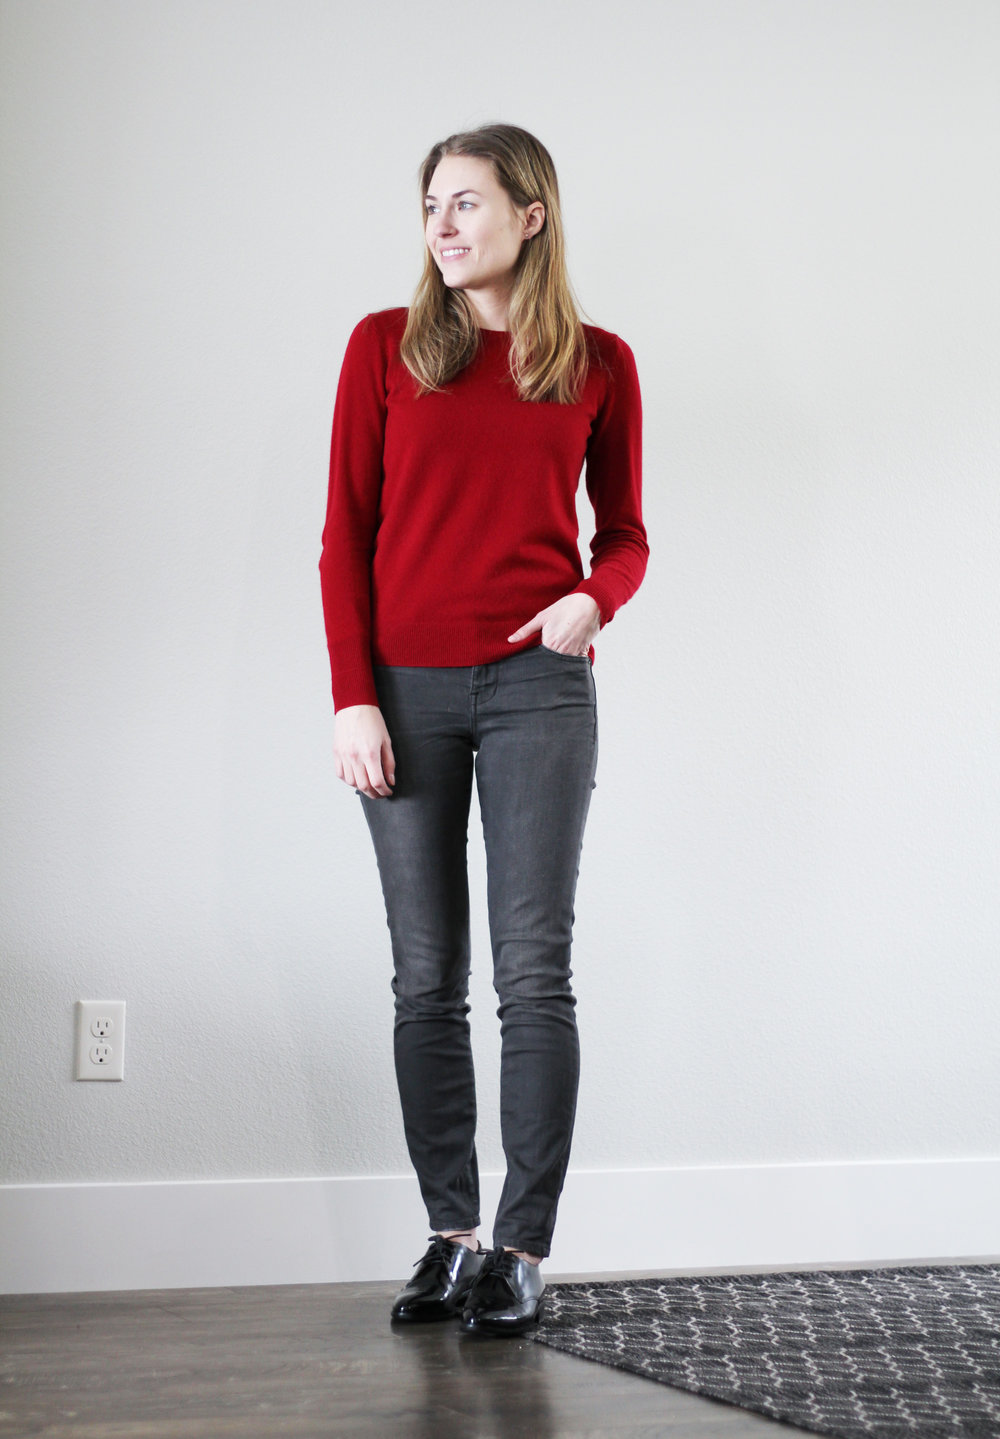 Winter 10x10: Red cashmere sweater, grey skinny jeans, shiny black oxfords — Cotton Cashmere Cat Hair